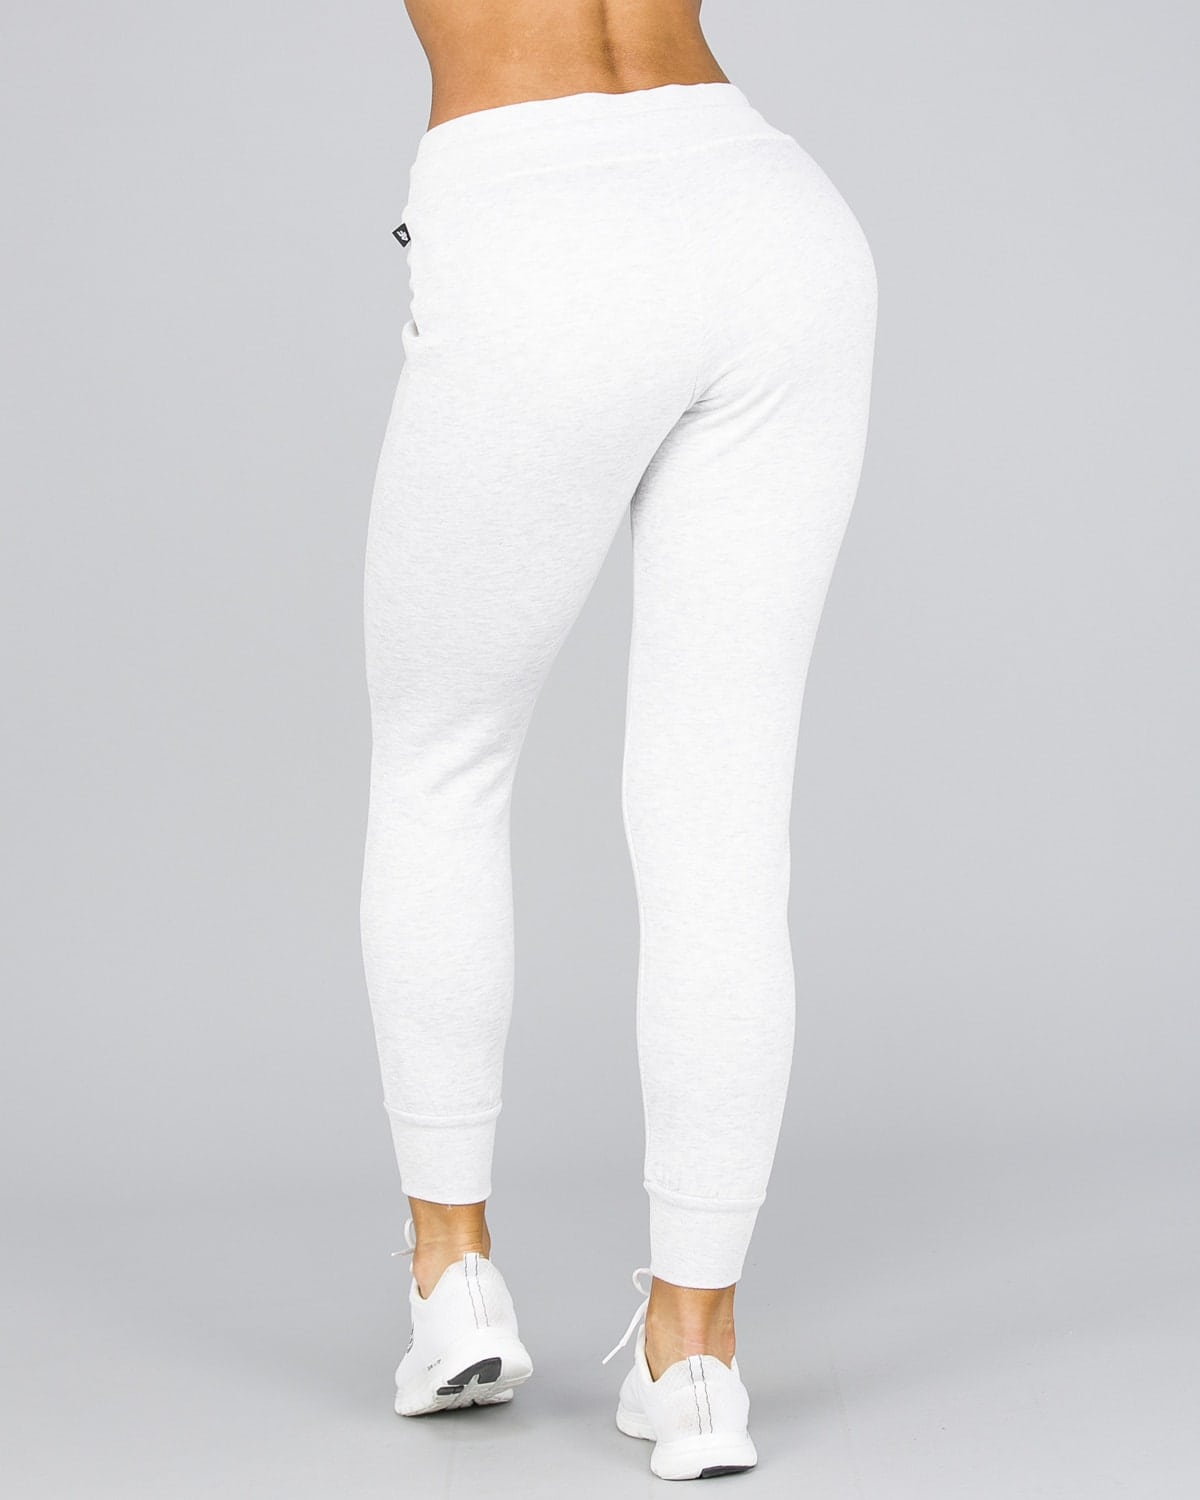 4F Fleece Pant Women – Light Grey Melange3